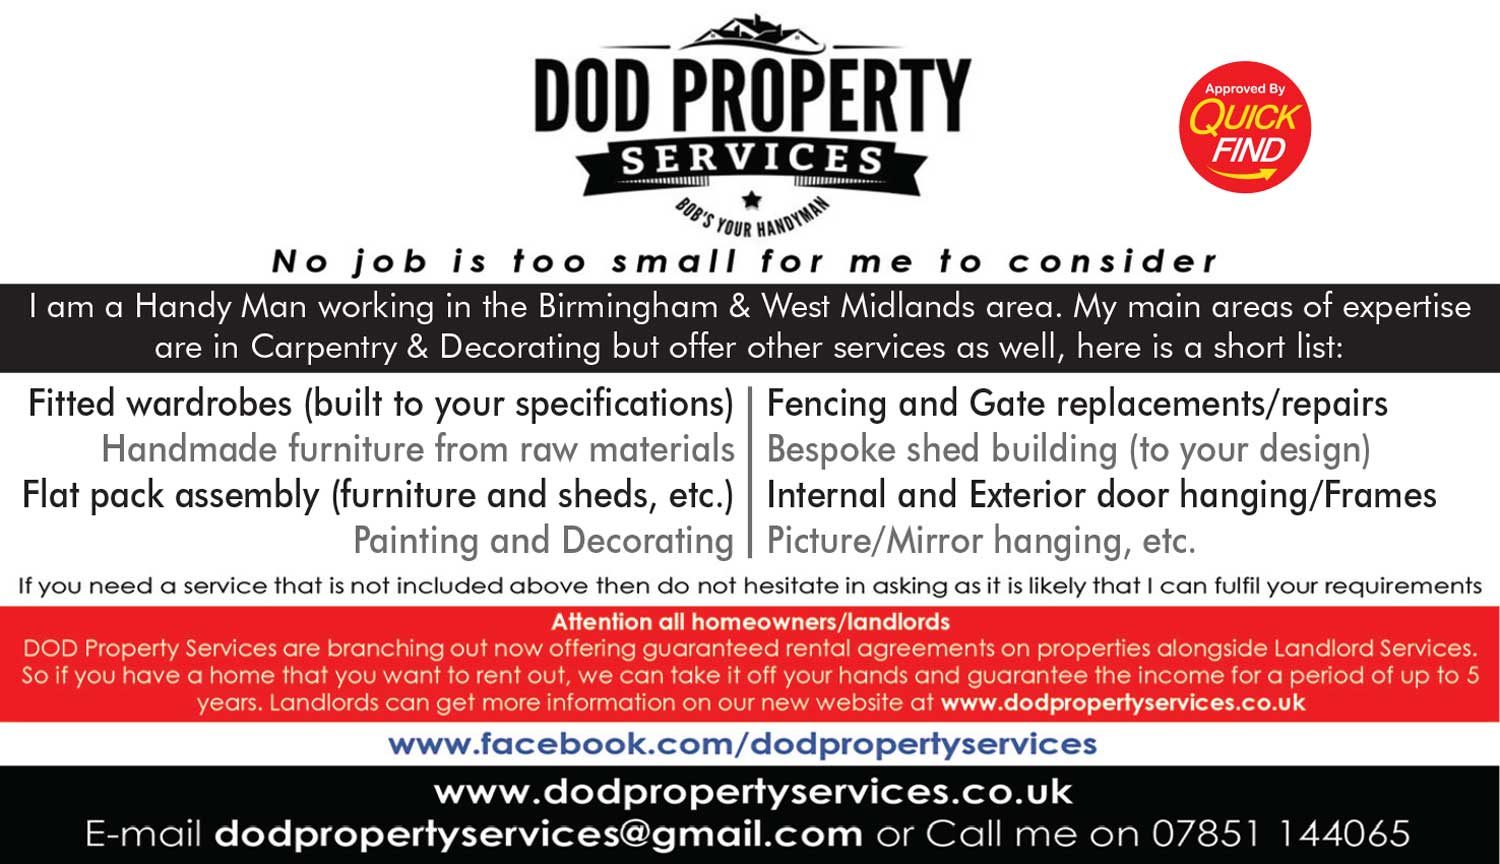 Dod Property Services